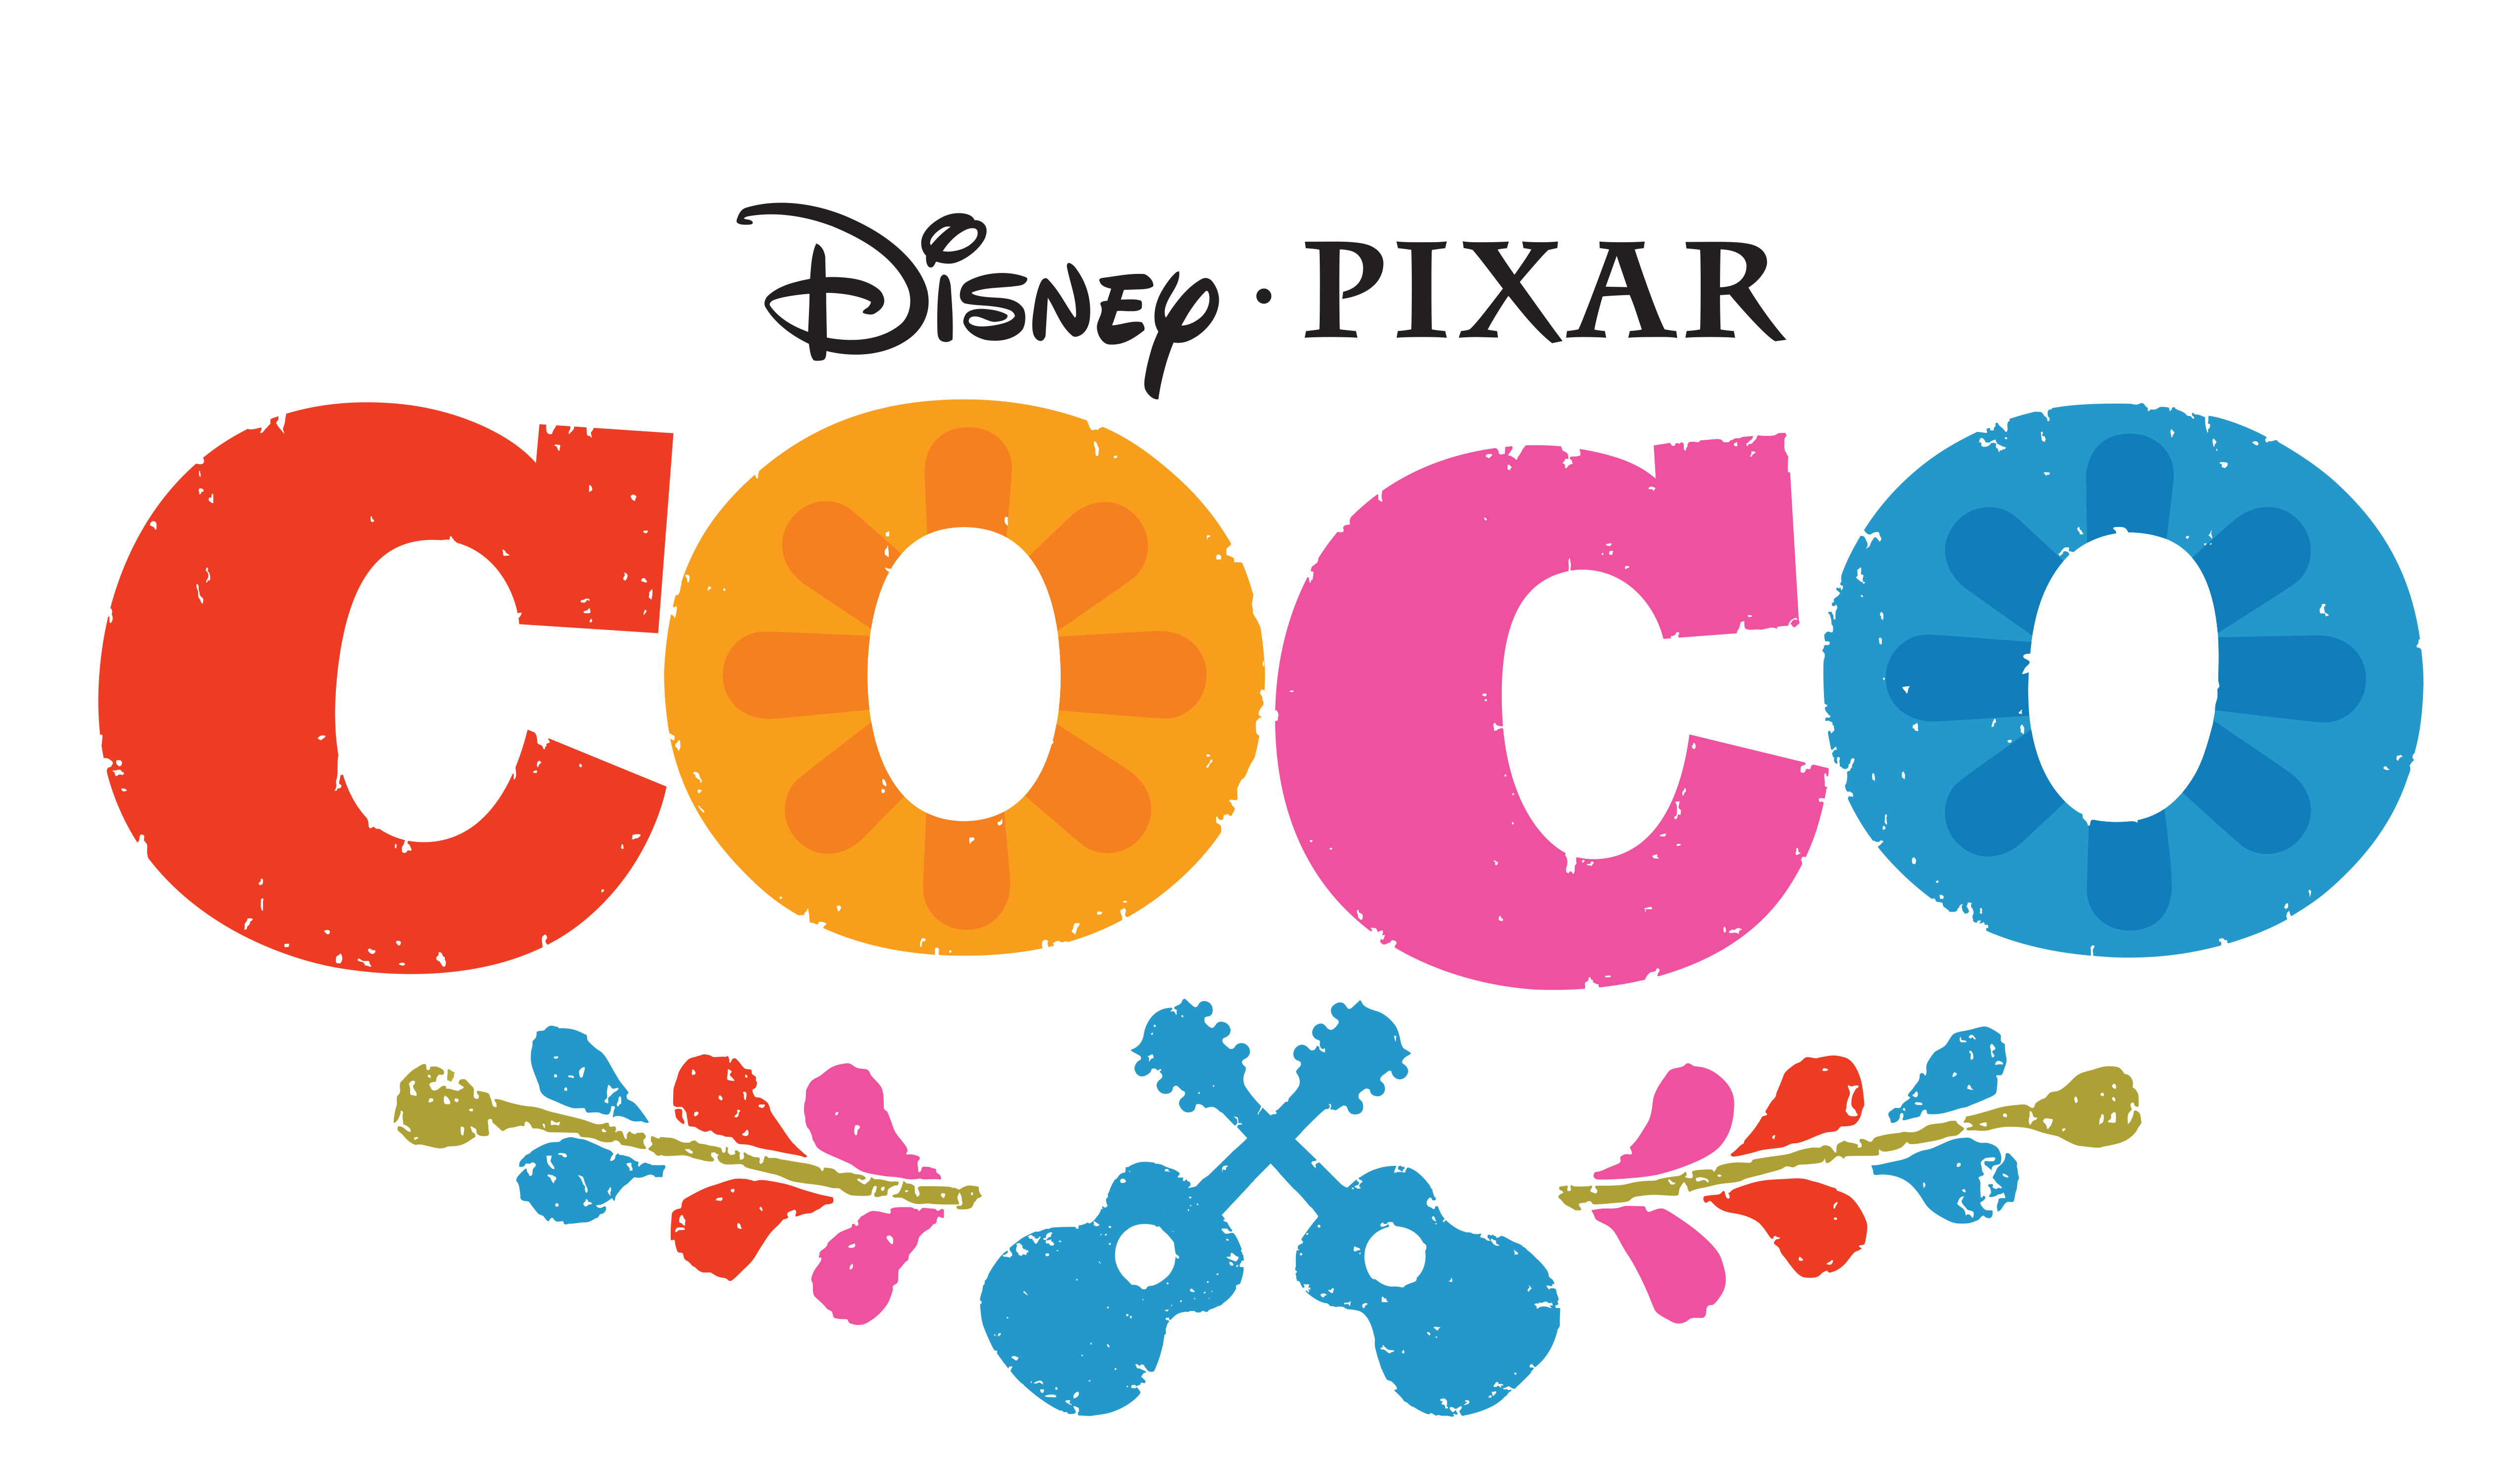 Disney Pixar's Coco is a spooky movie that the whole family can enjoy together - Alvinology